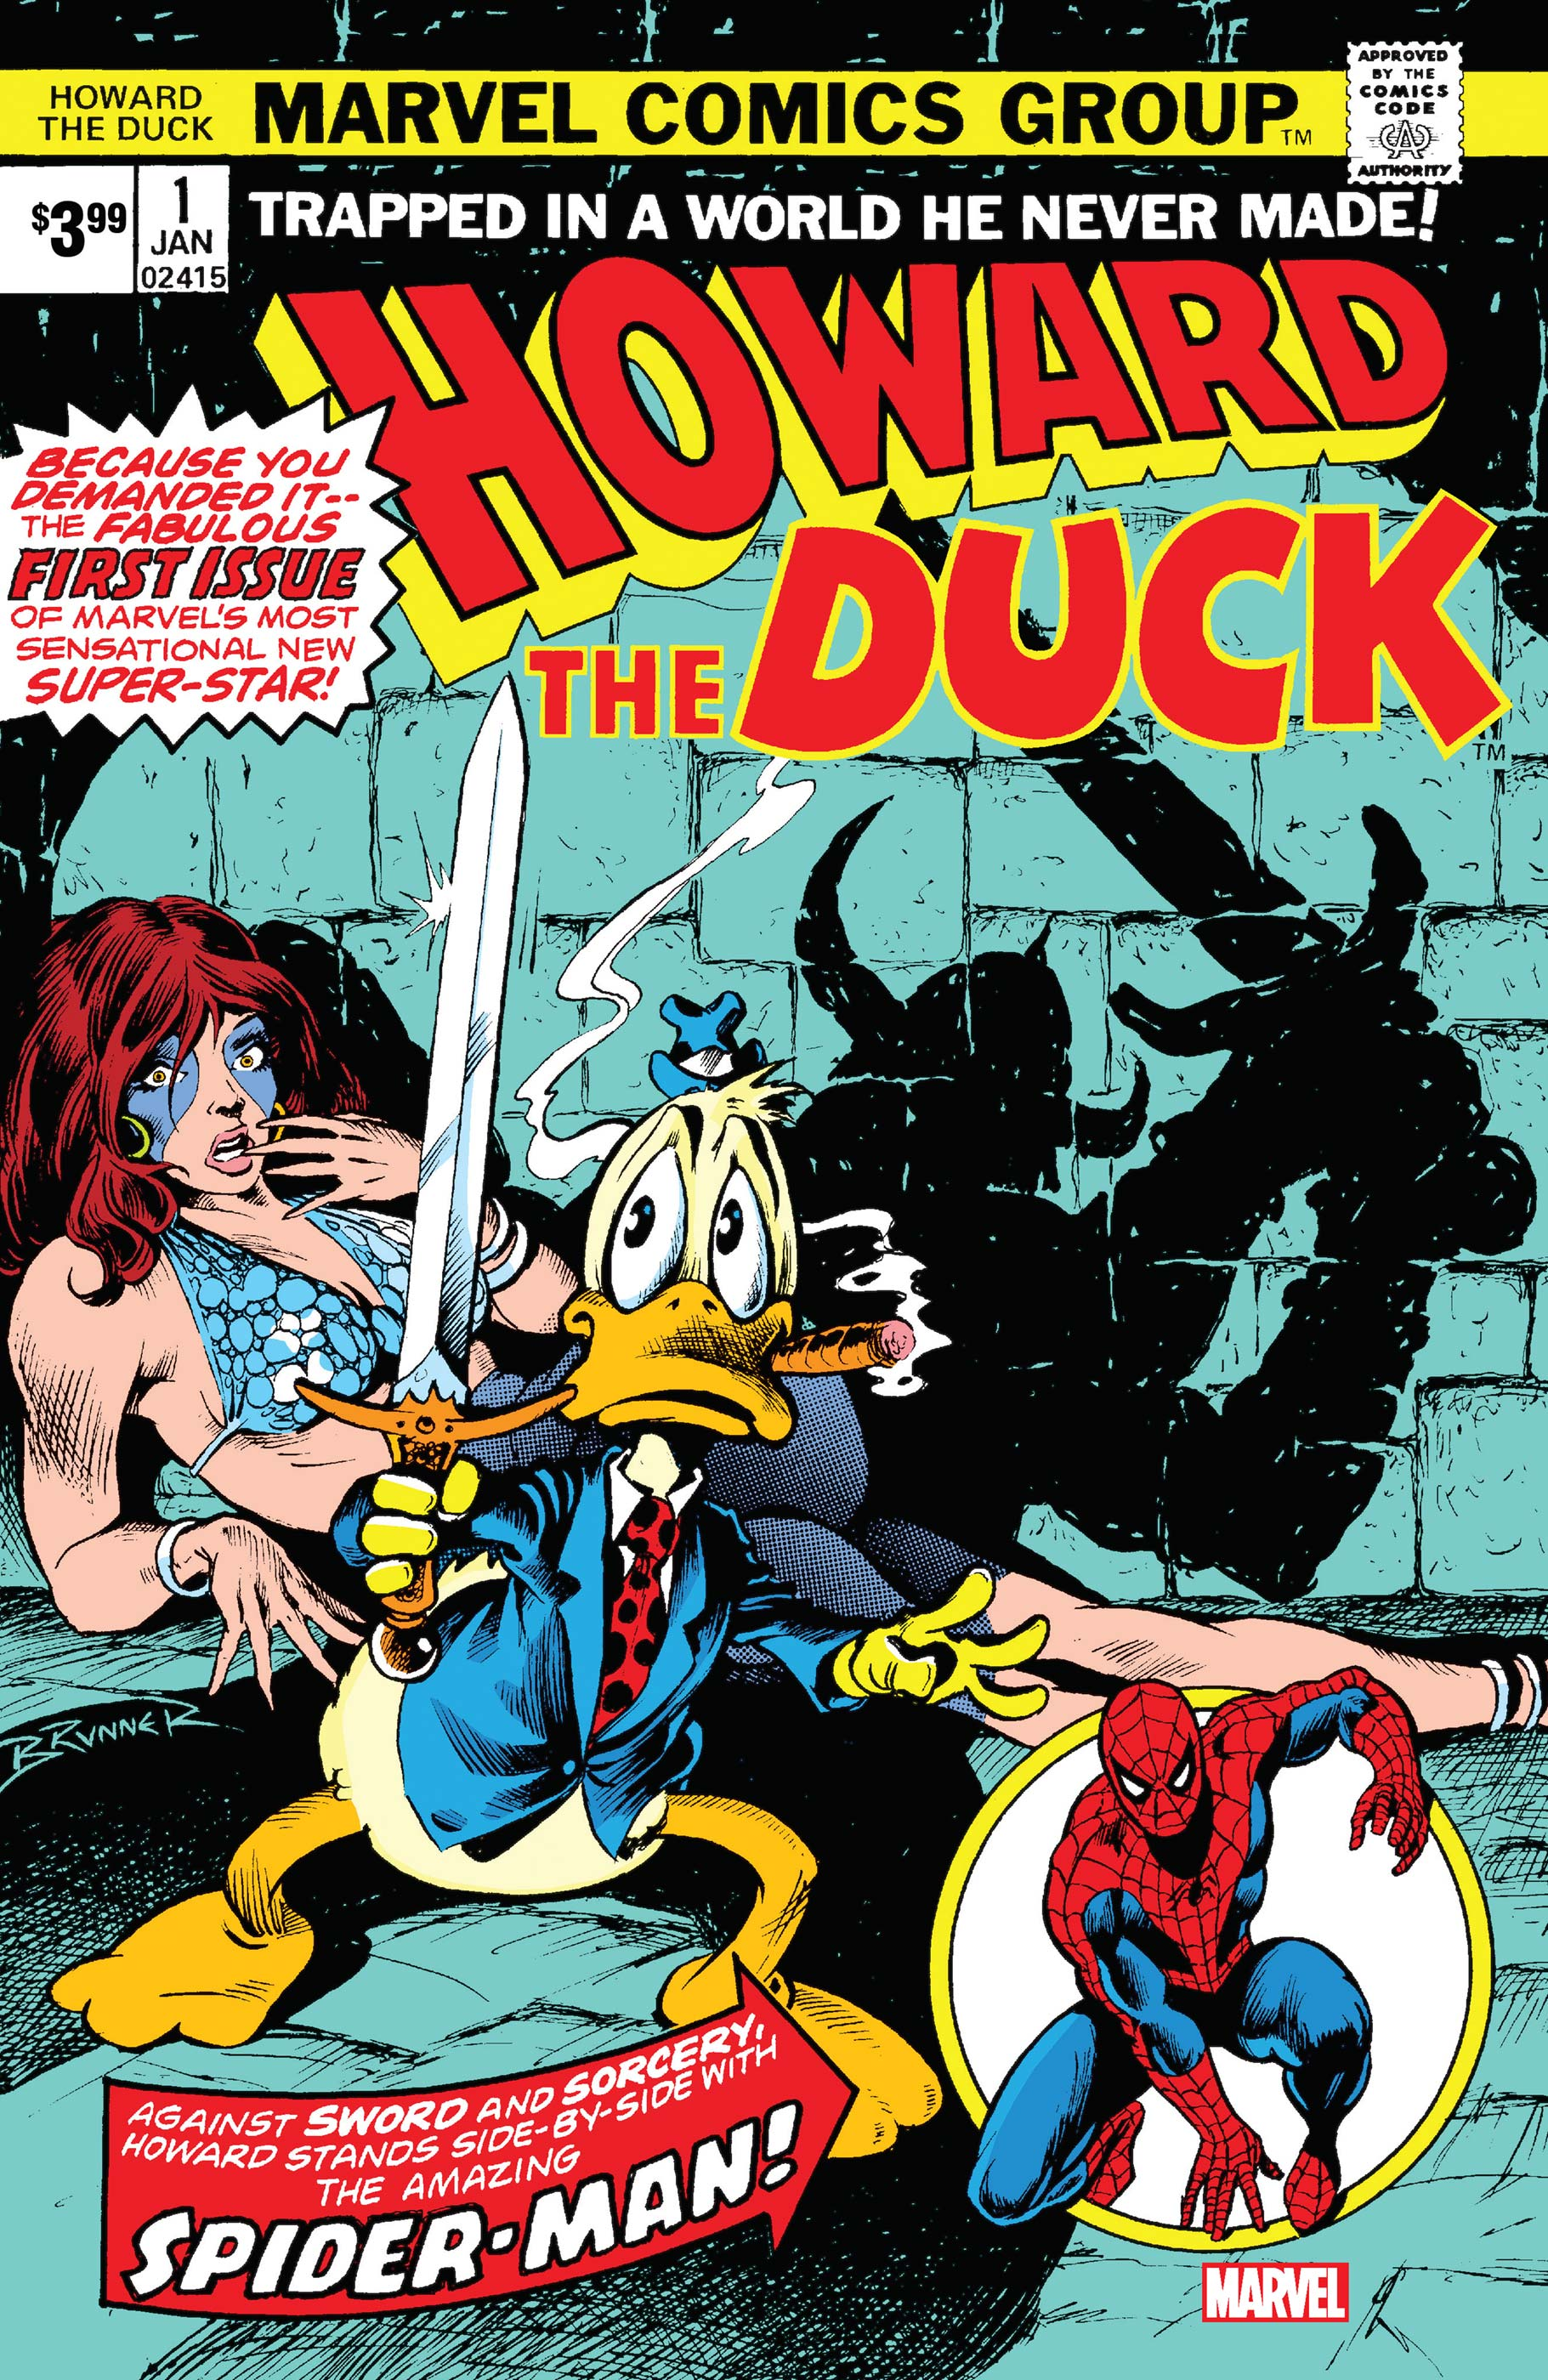 Howard The Duck Facsimile Edition (2019) #1